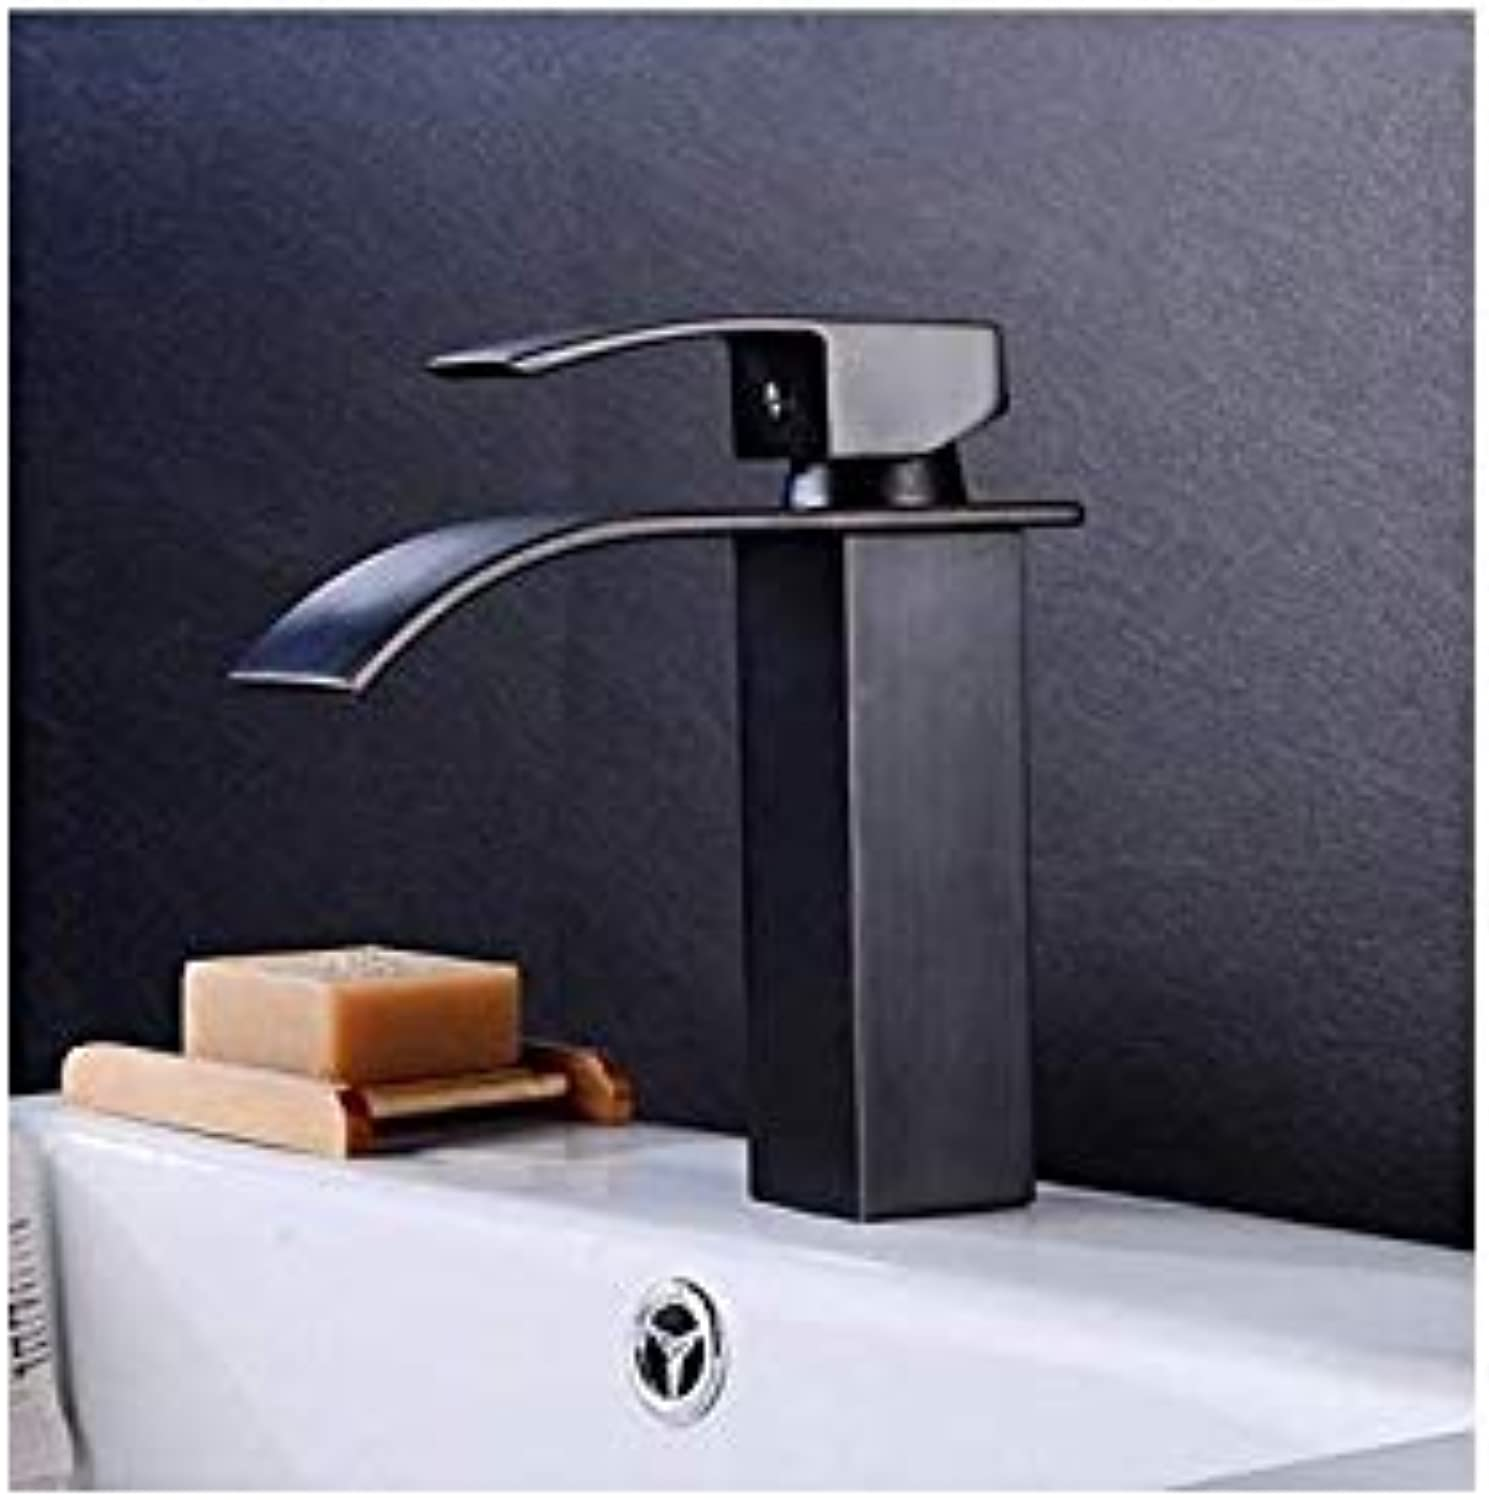 Basin Faucet Antique Waterfall Faucet Bathroom Faucet Basin Mixer Tap Basin Faucet Black Bathroom Basin Sink Faucet